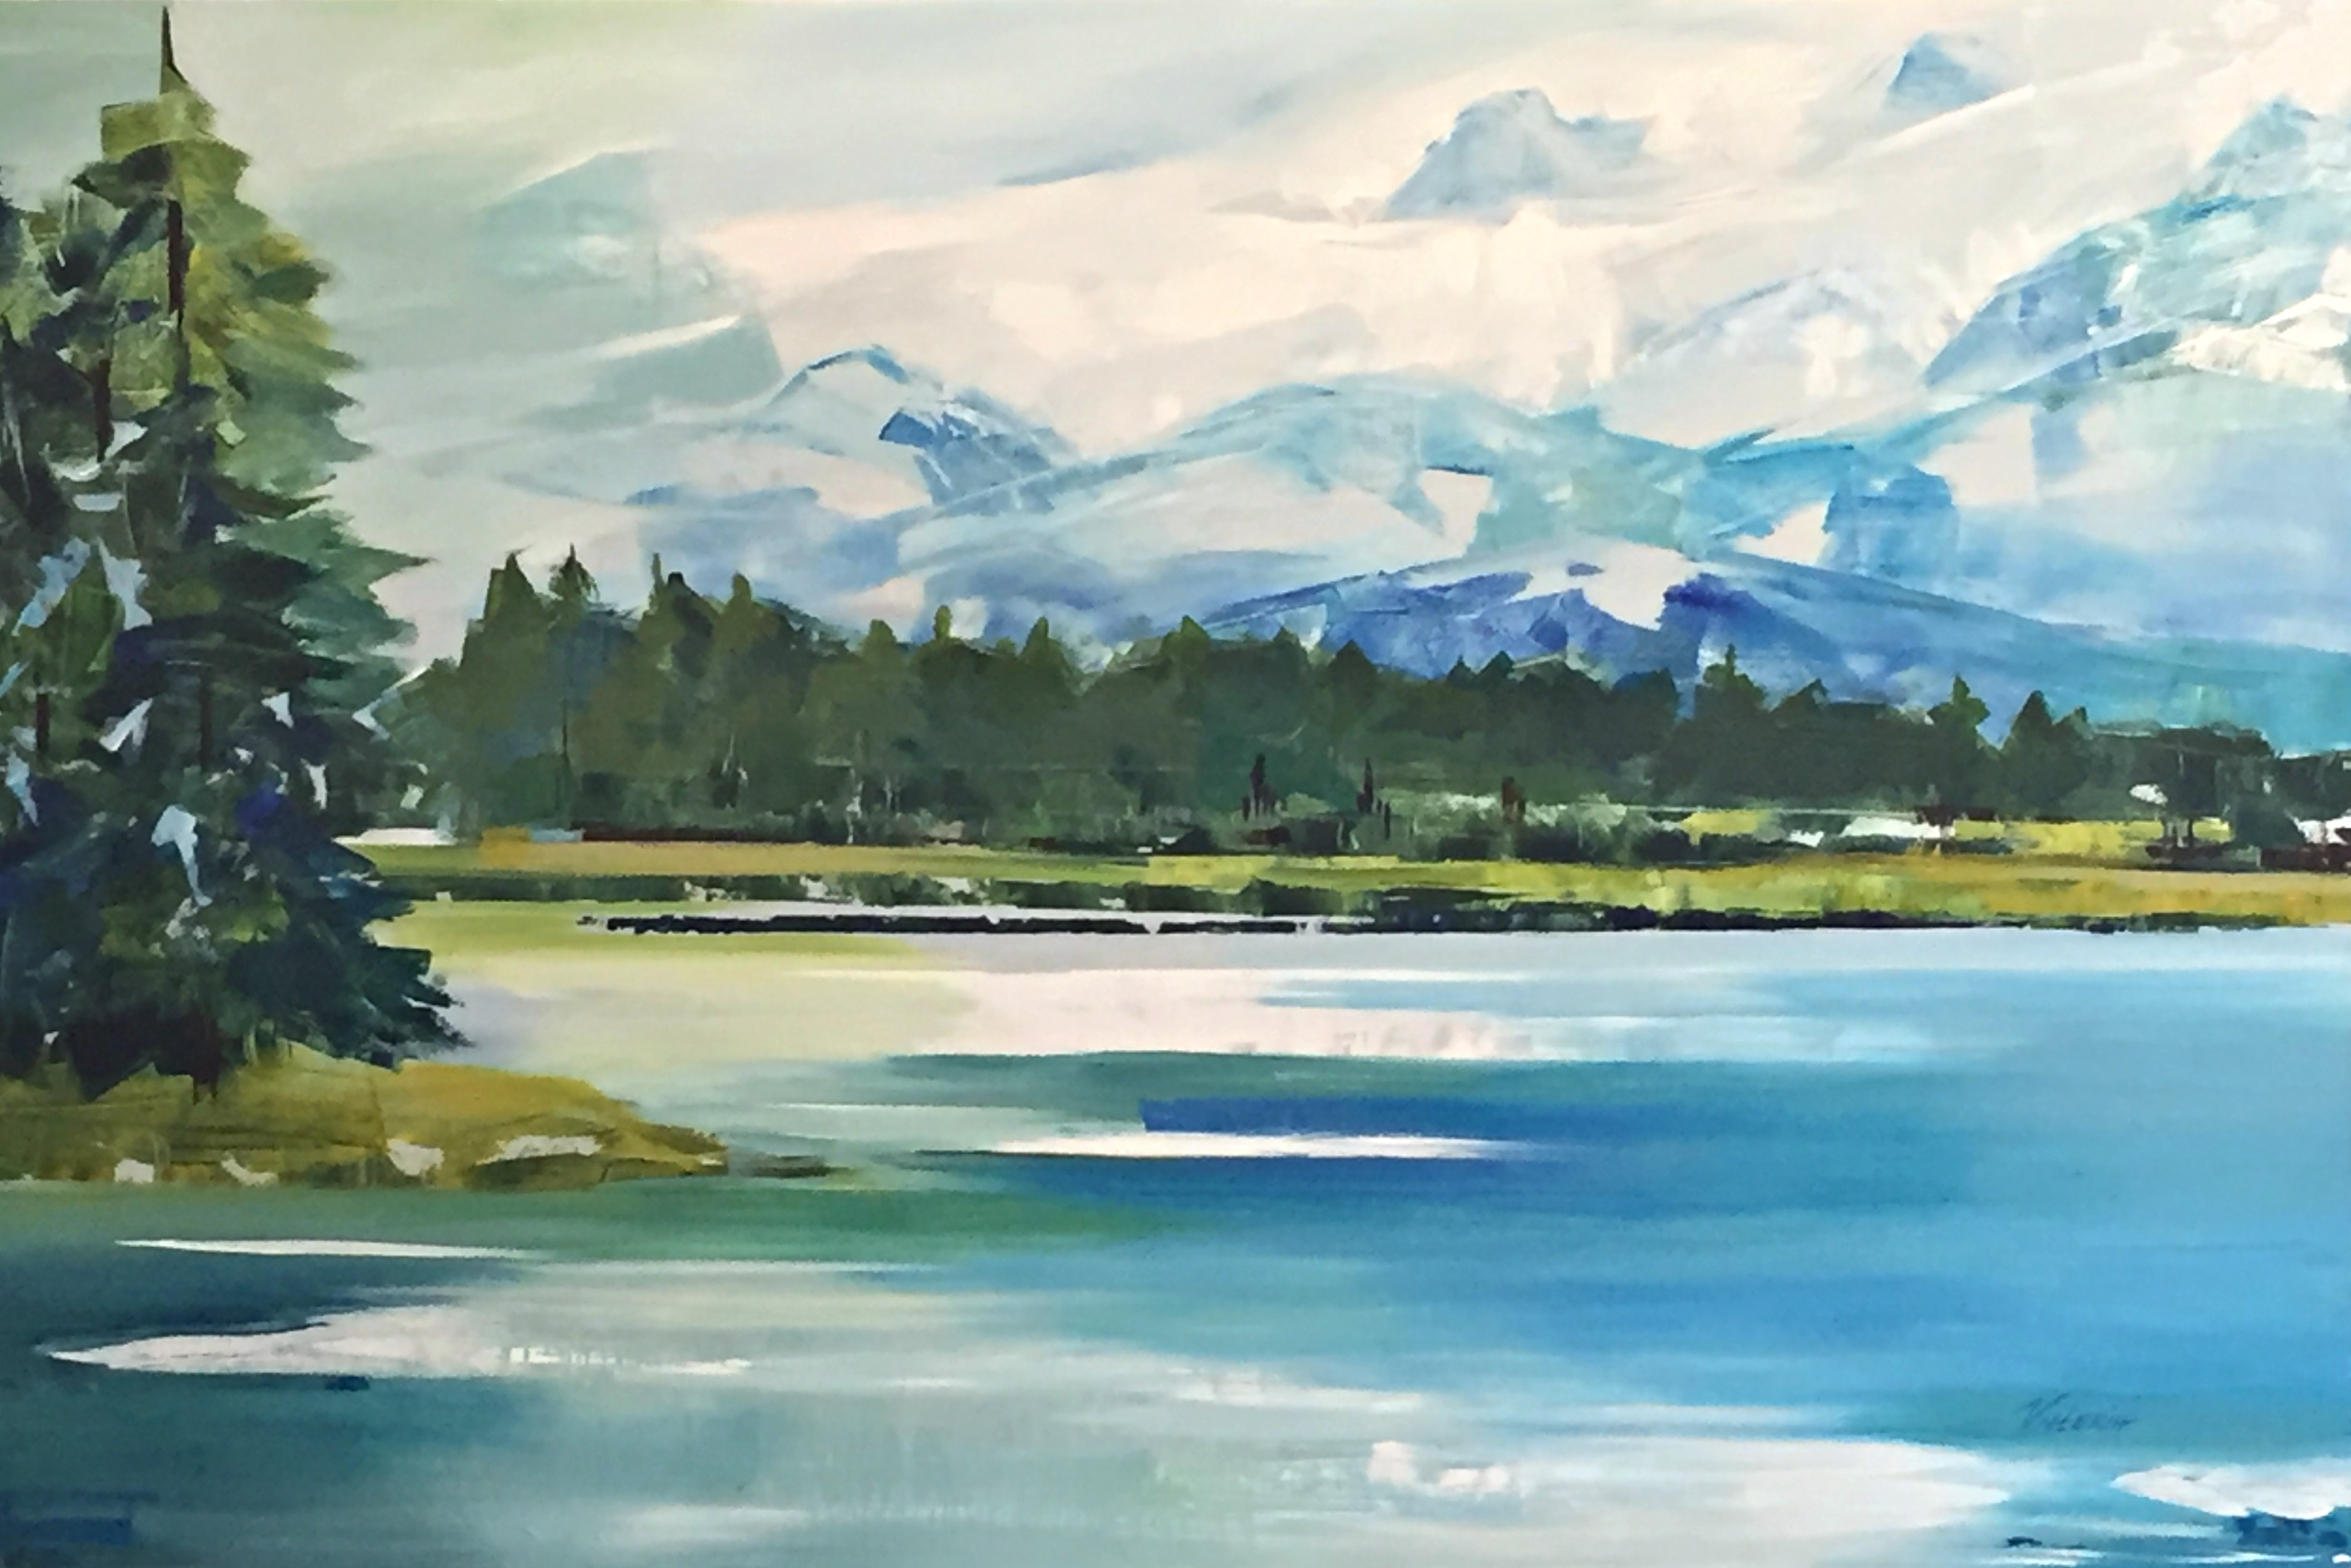 Glorious and Free, acrylic painting by Valeria Mravyan | Effusion Art Gallery + Cast Glass Studio, Invermere BC